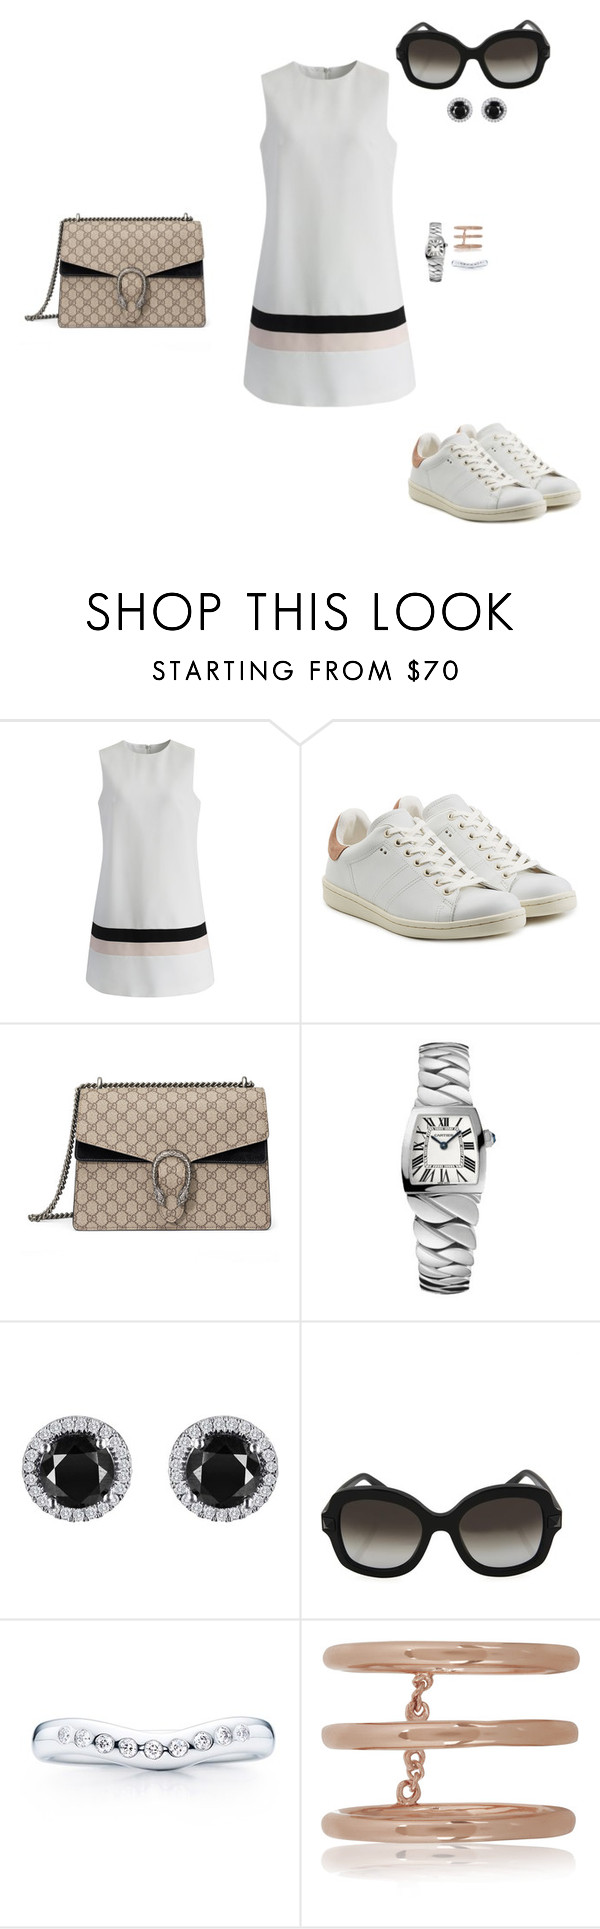 """""""Sem título #1959"""" by analuli on Polyvore featuring moda, Chicwish, Étoile Isabel Marant, Gucci, Cartier, Reeds Jewelers, Valentino, Elsa Peretti e Arme De L'Amour"""